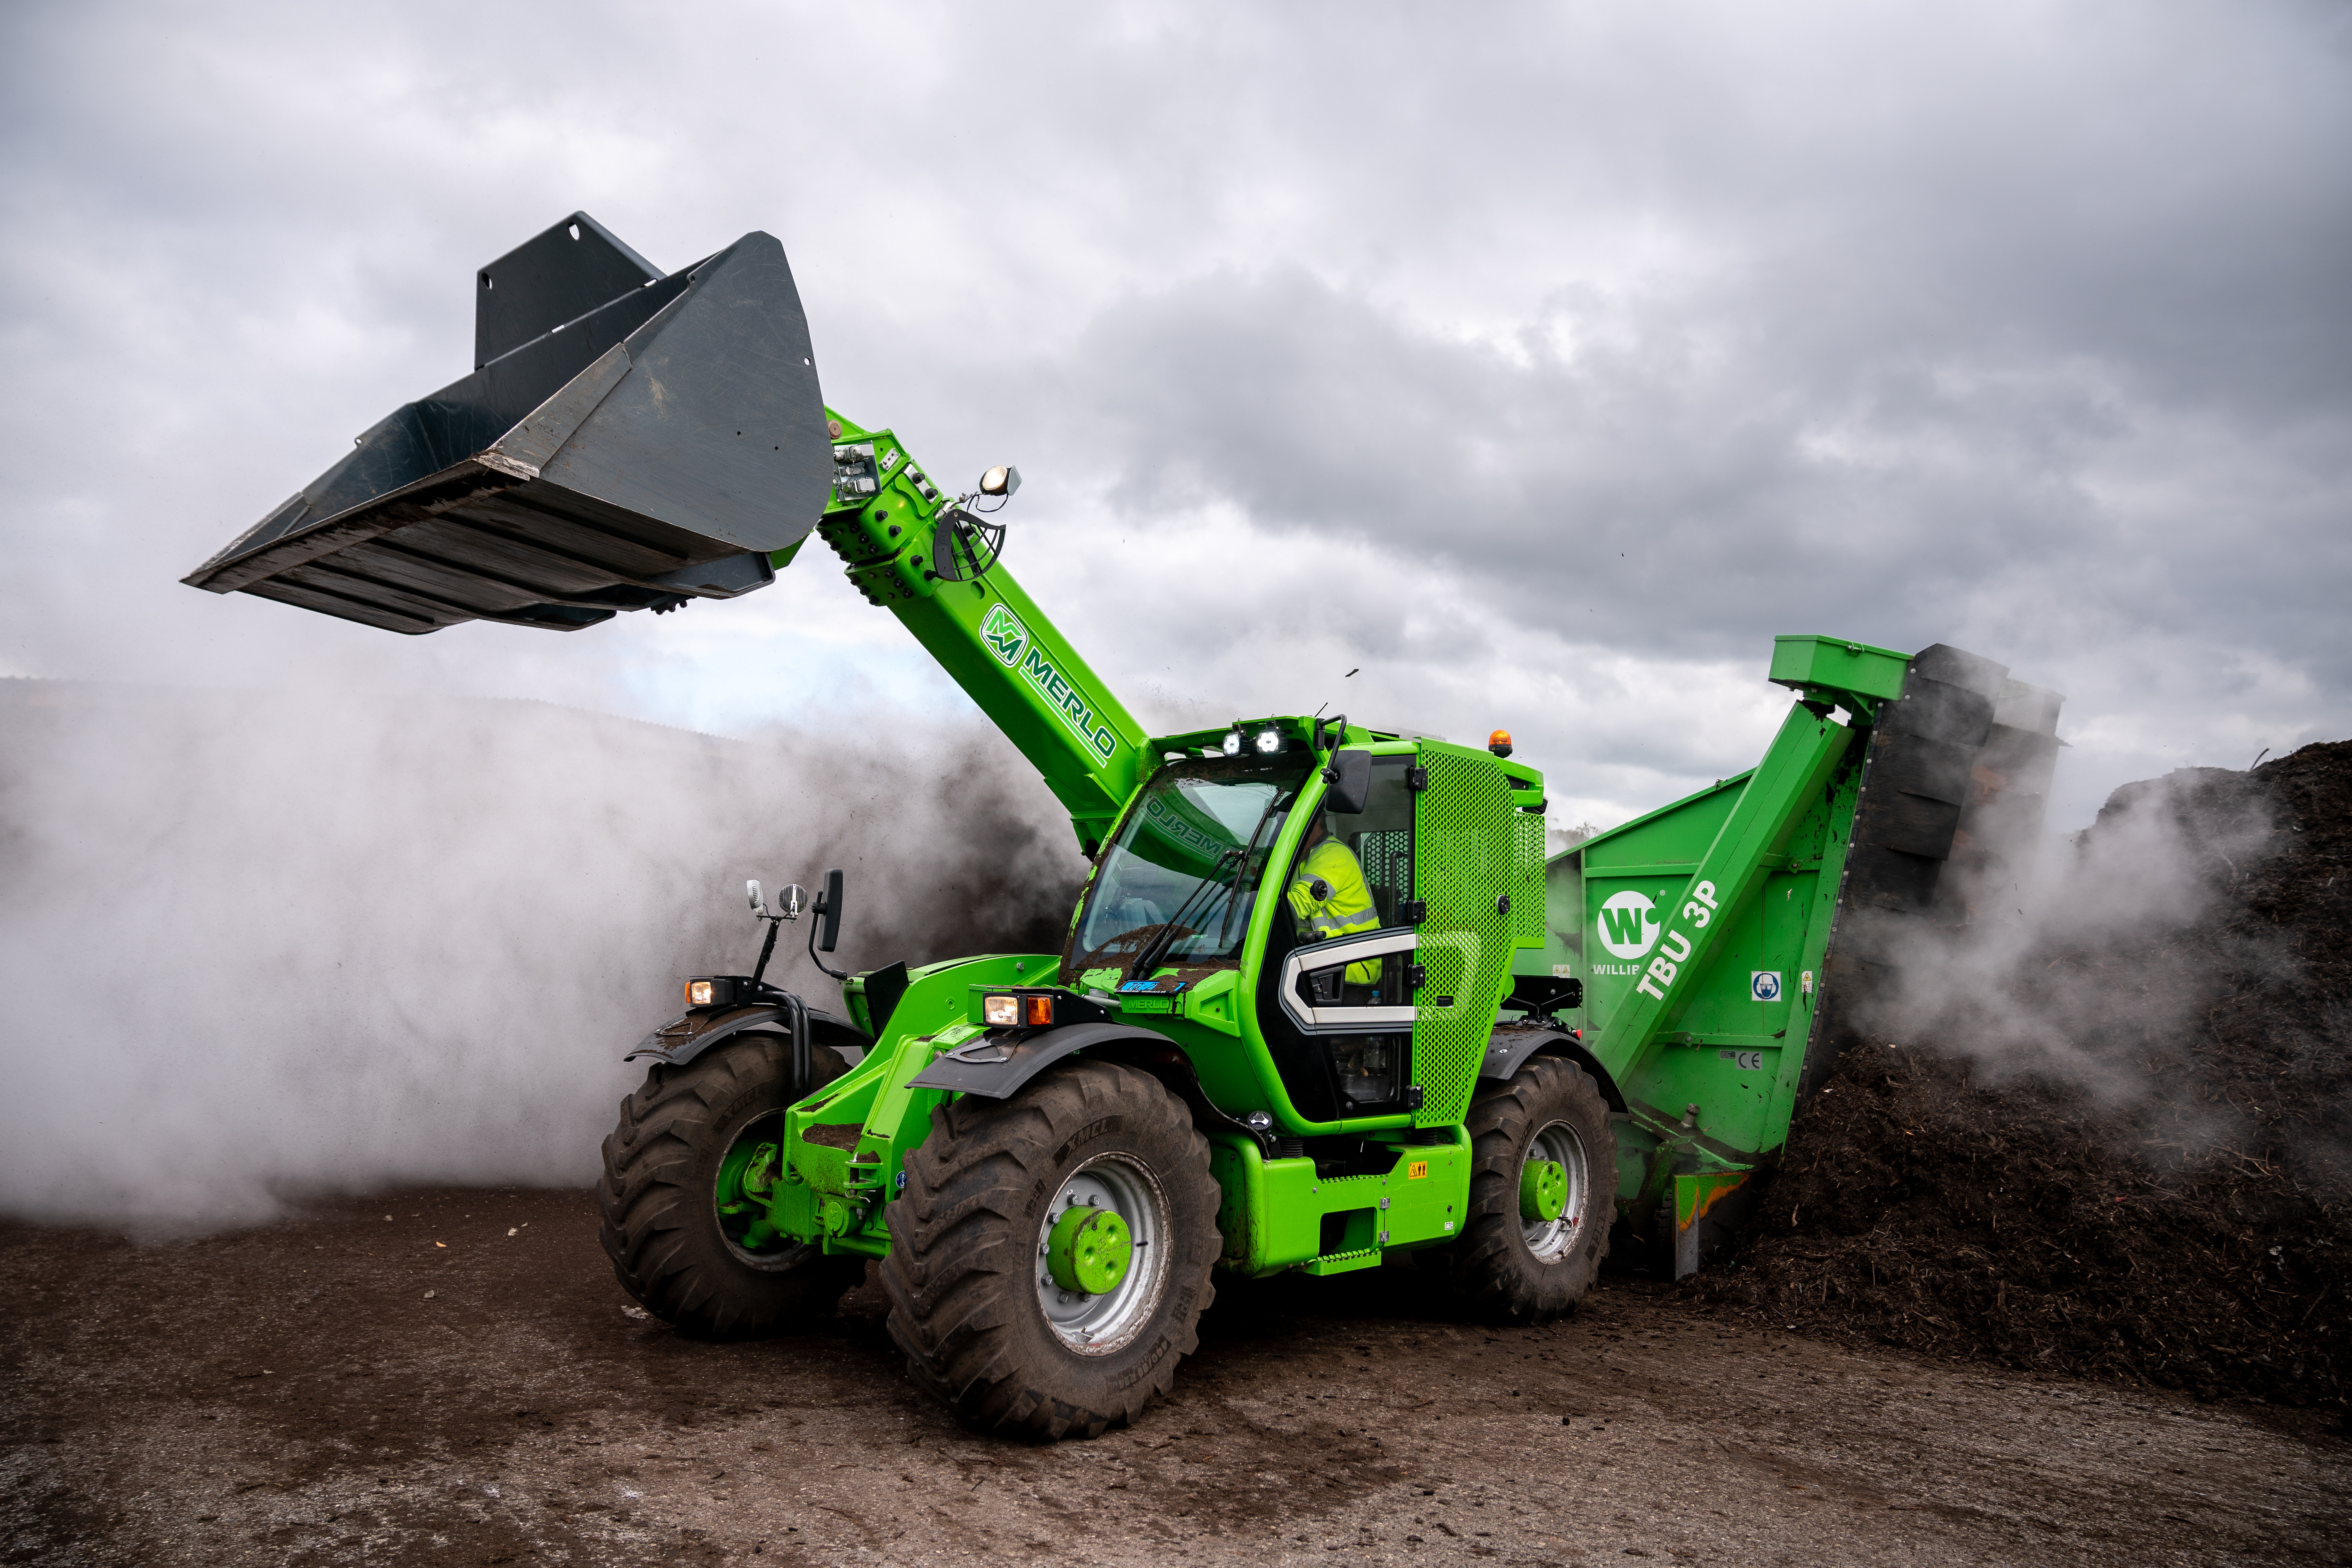 Turning compost piles: In order to achieve a high compost quality the piles must be turned regularly